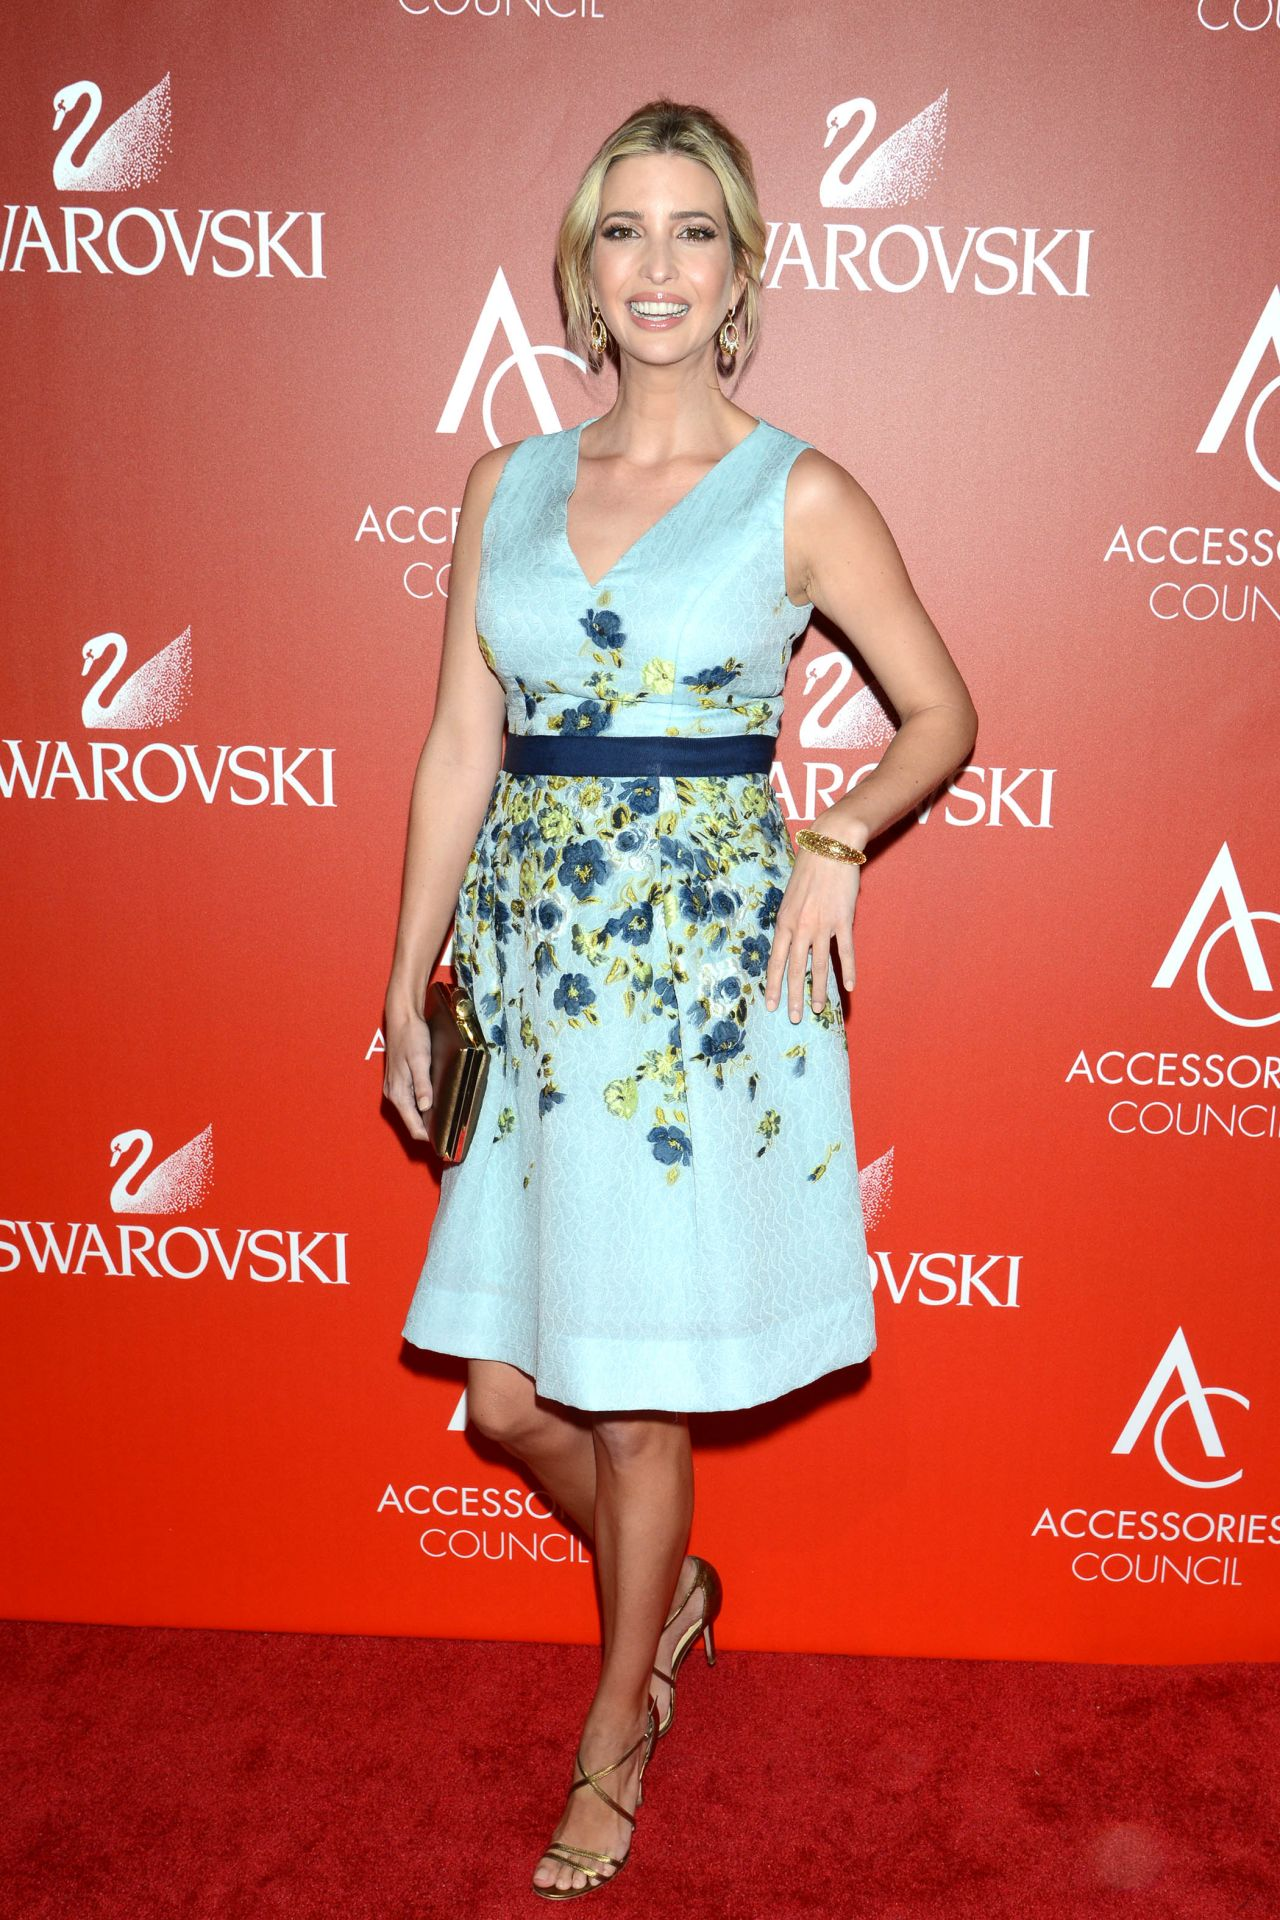 Ivanka Trump Accessories Council Ace Awards In New York